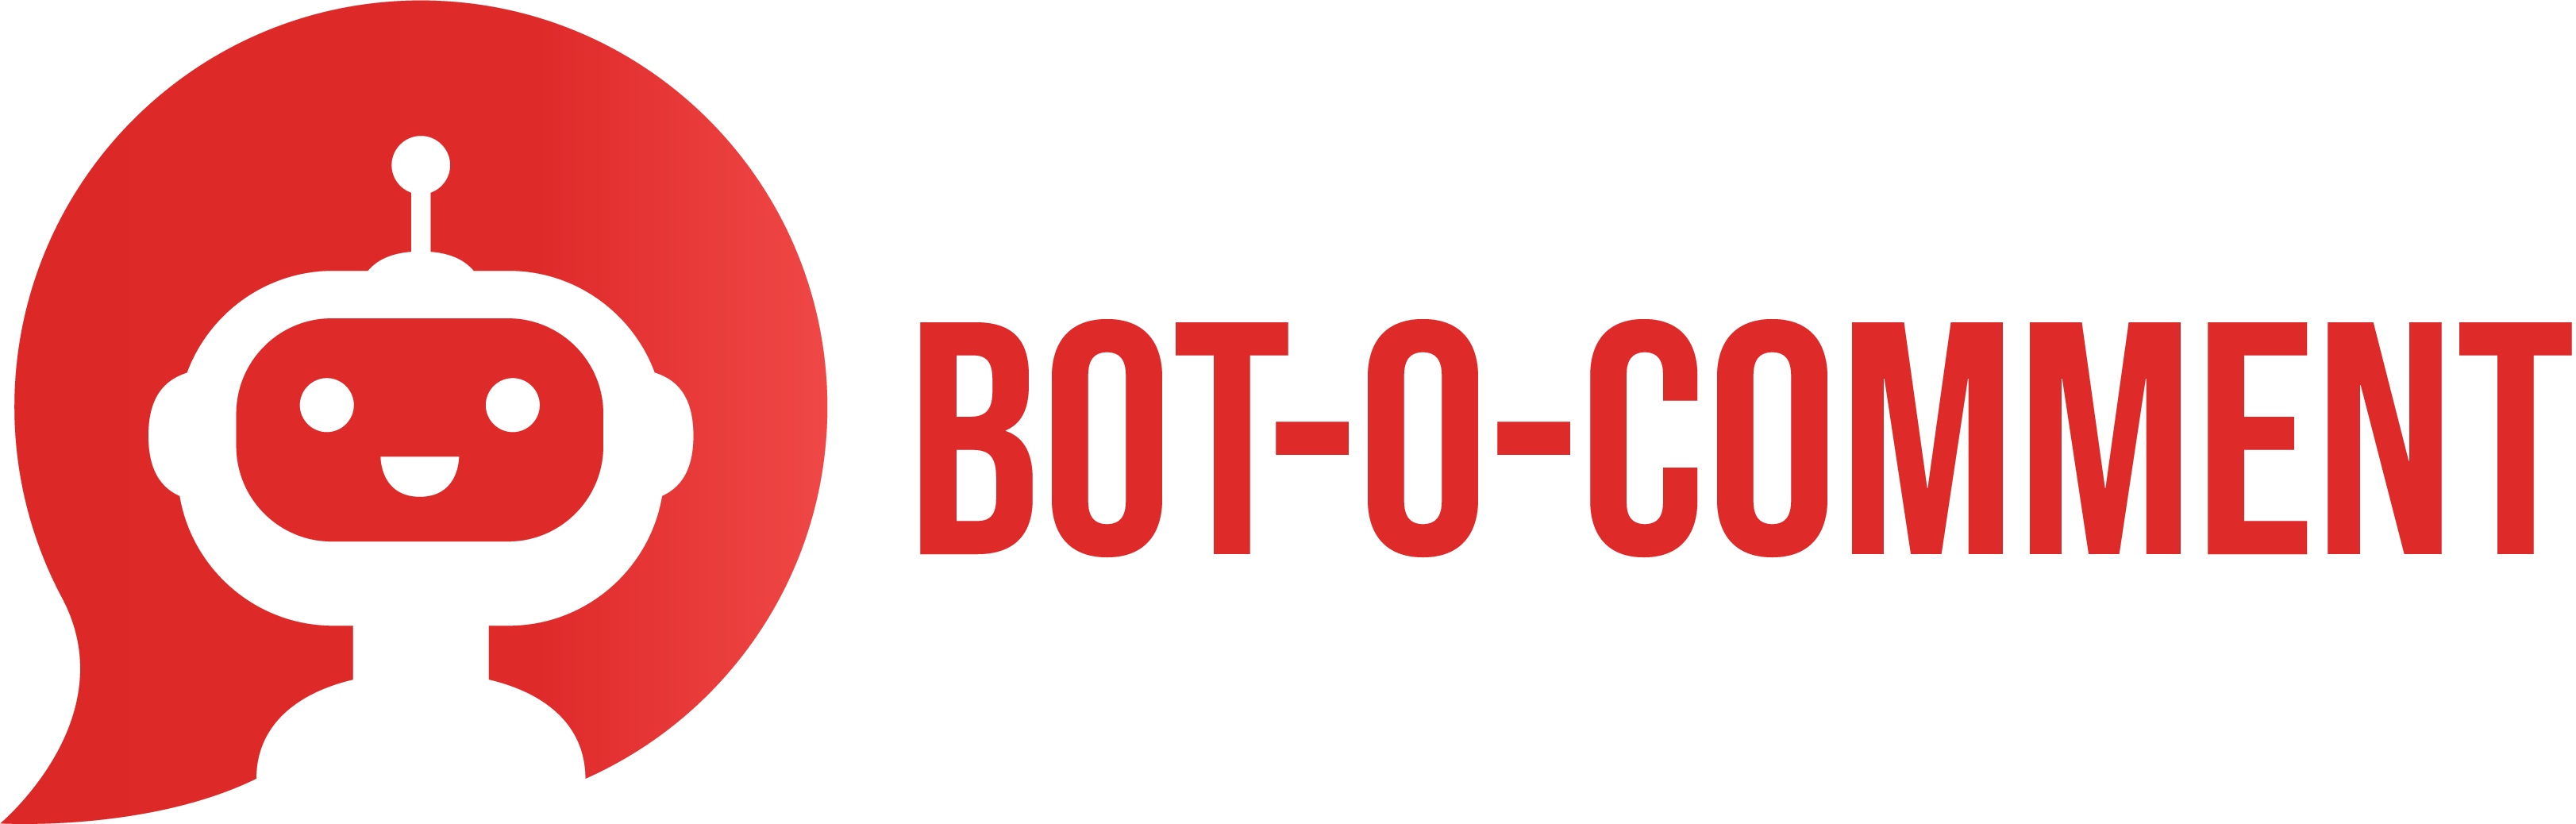 The logo of Bot-O-Comment.